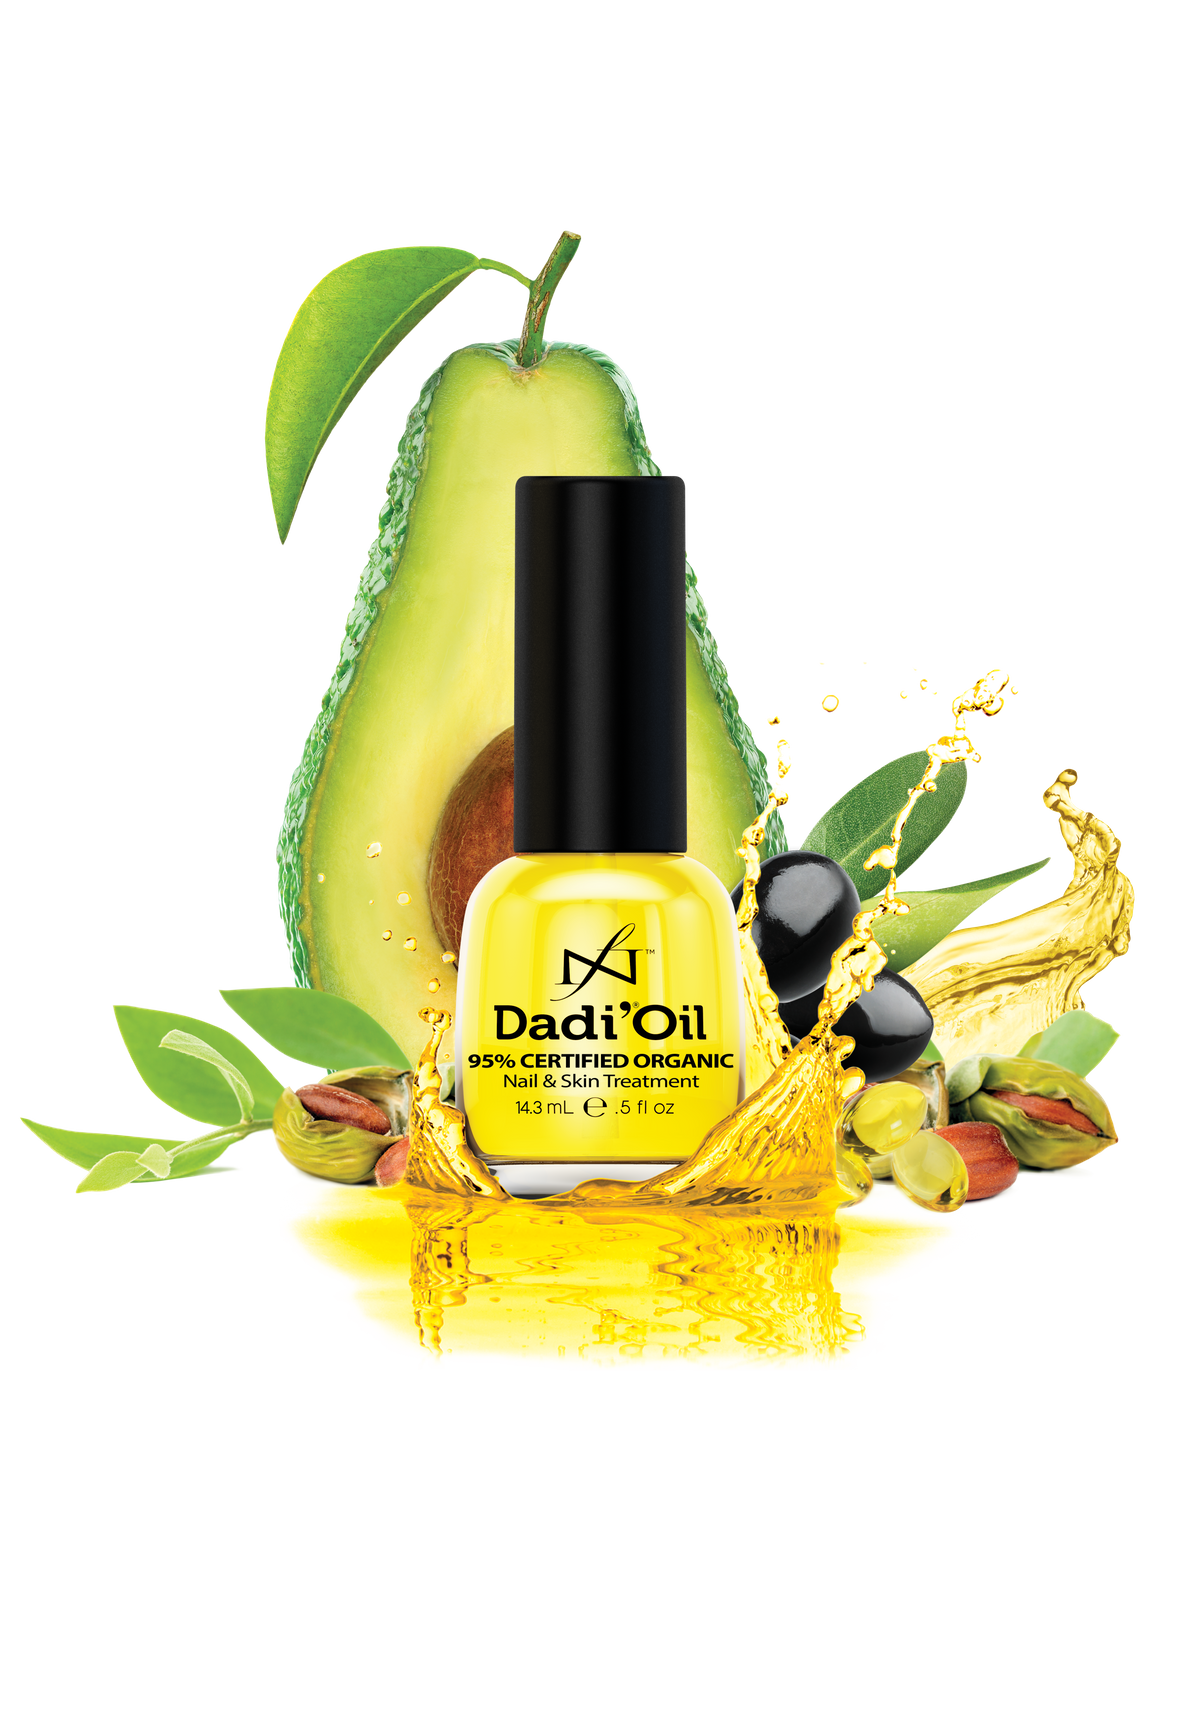 dadi_oil_5oz_ingredient